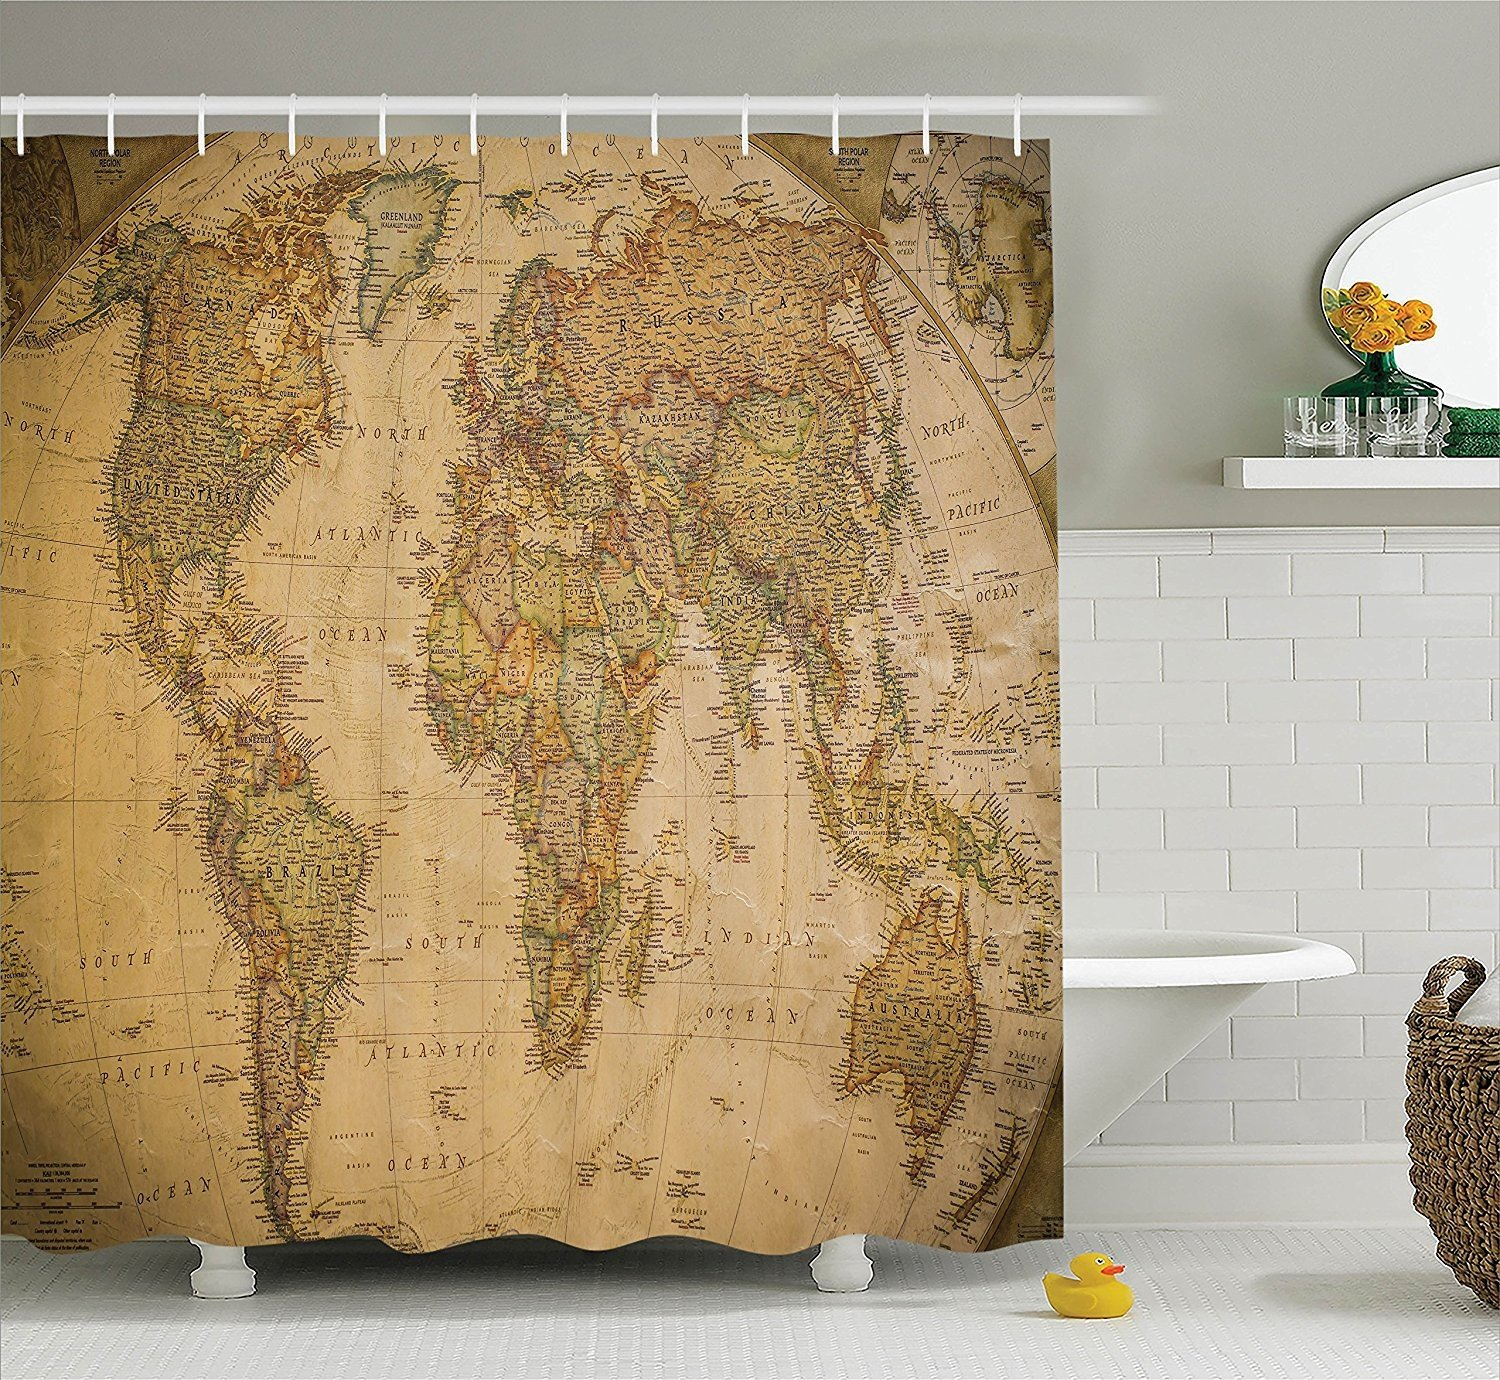 Old world map accessories - Old world map shower curtain ...